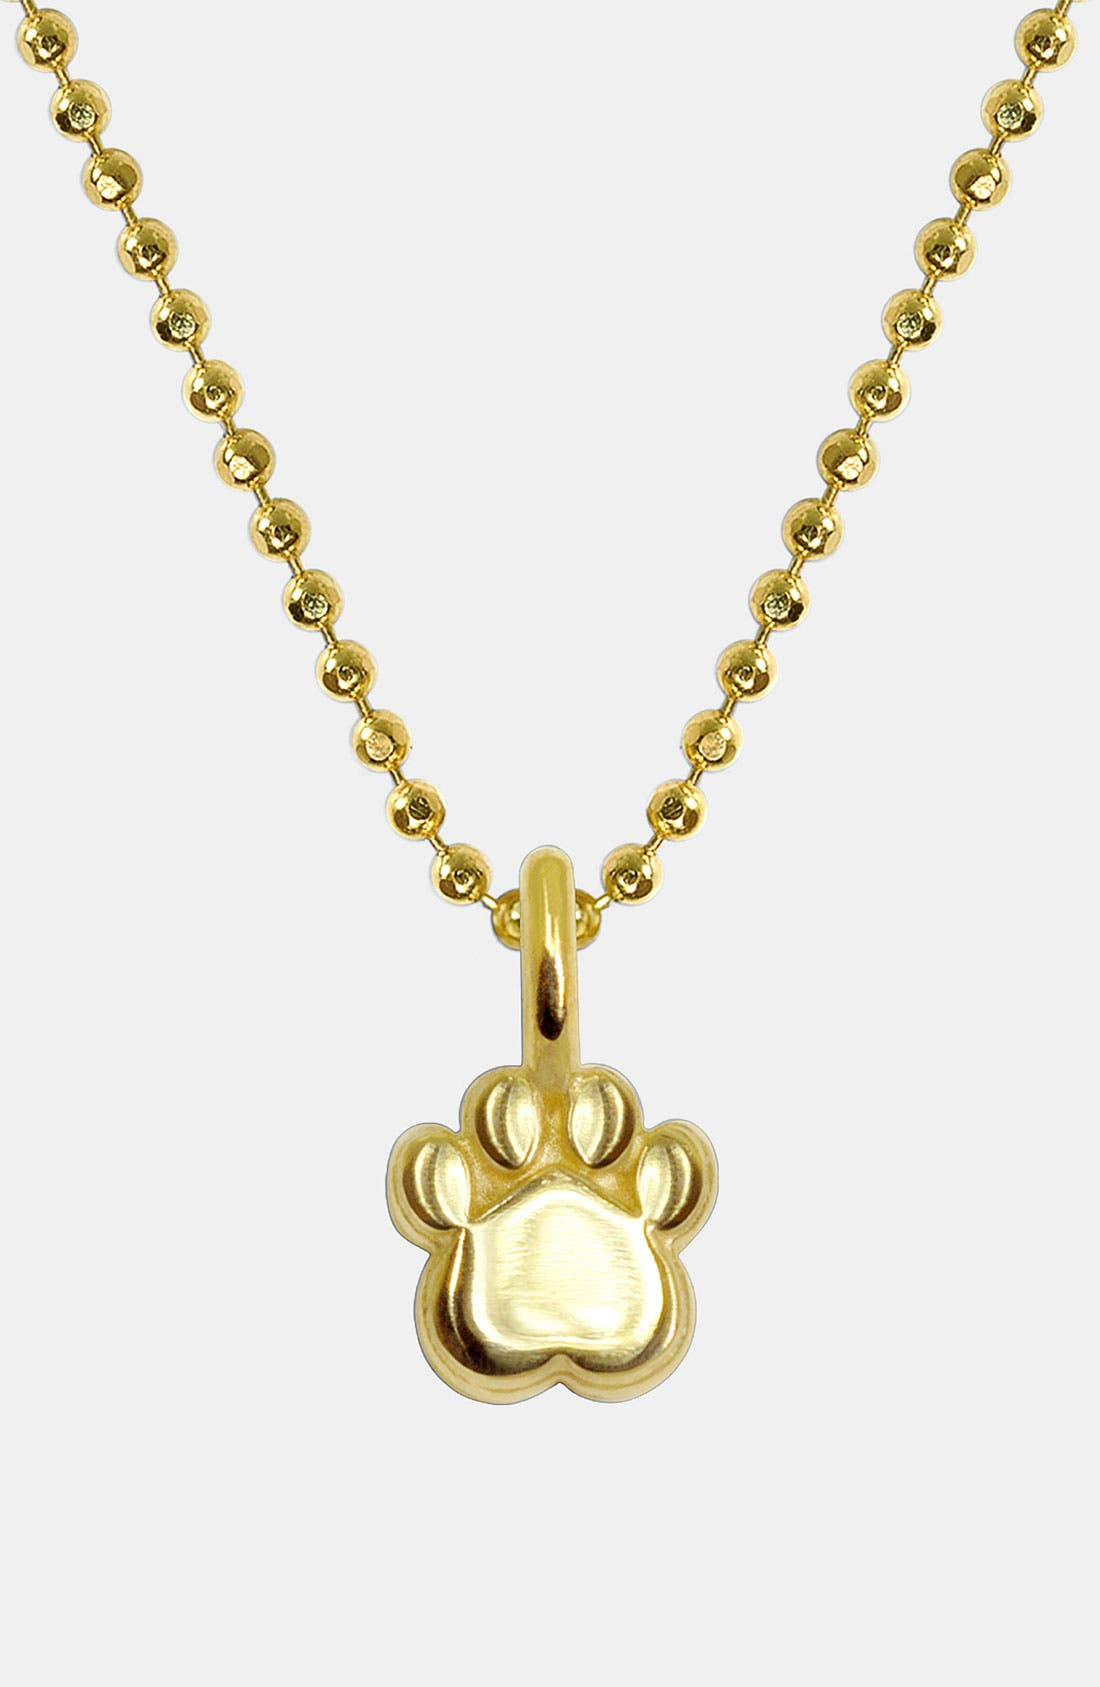 Alternate Image 1 Selected - Alex Woo 'Mini Paw' 14k Gold Pendant Necklace